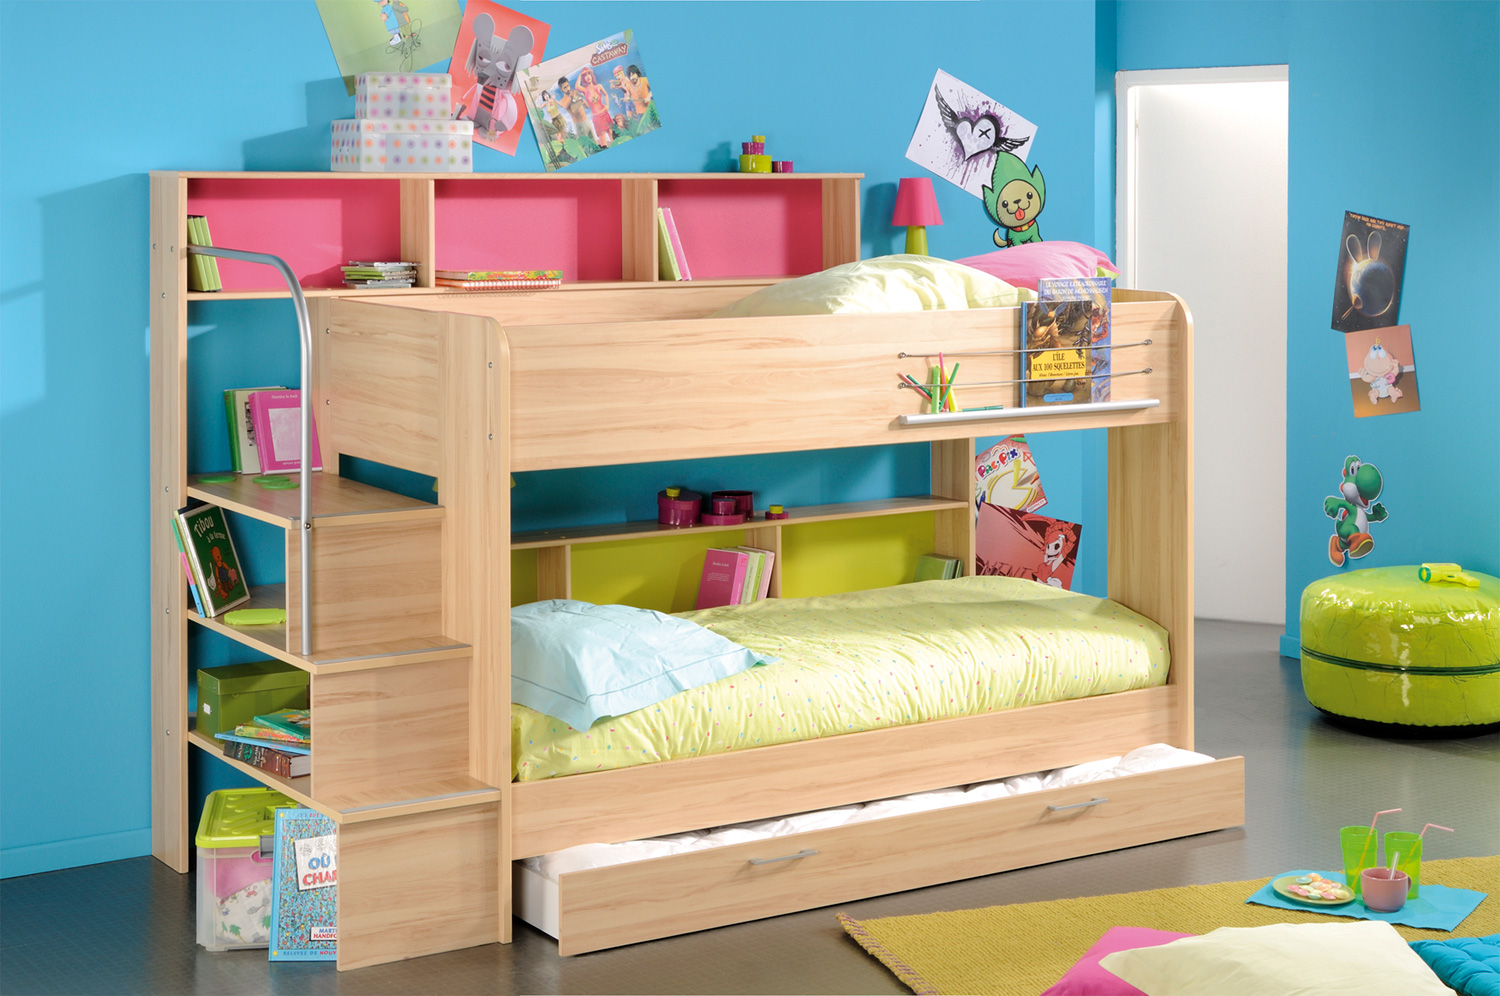 Space saving stylish bunk beds for your home for Kids bed design